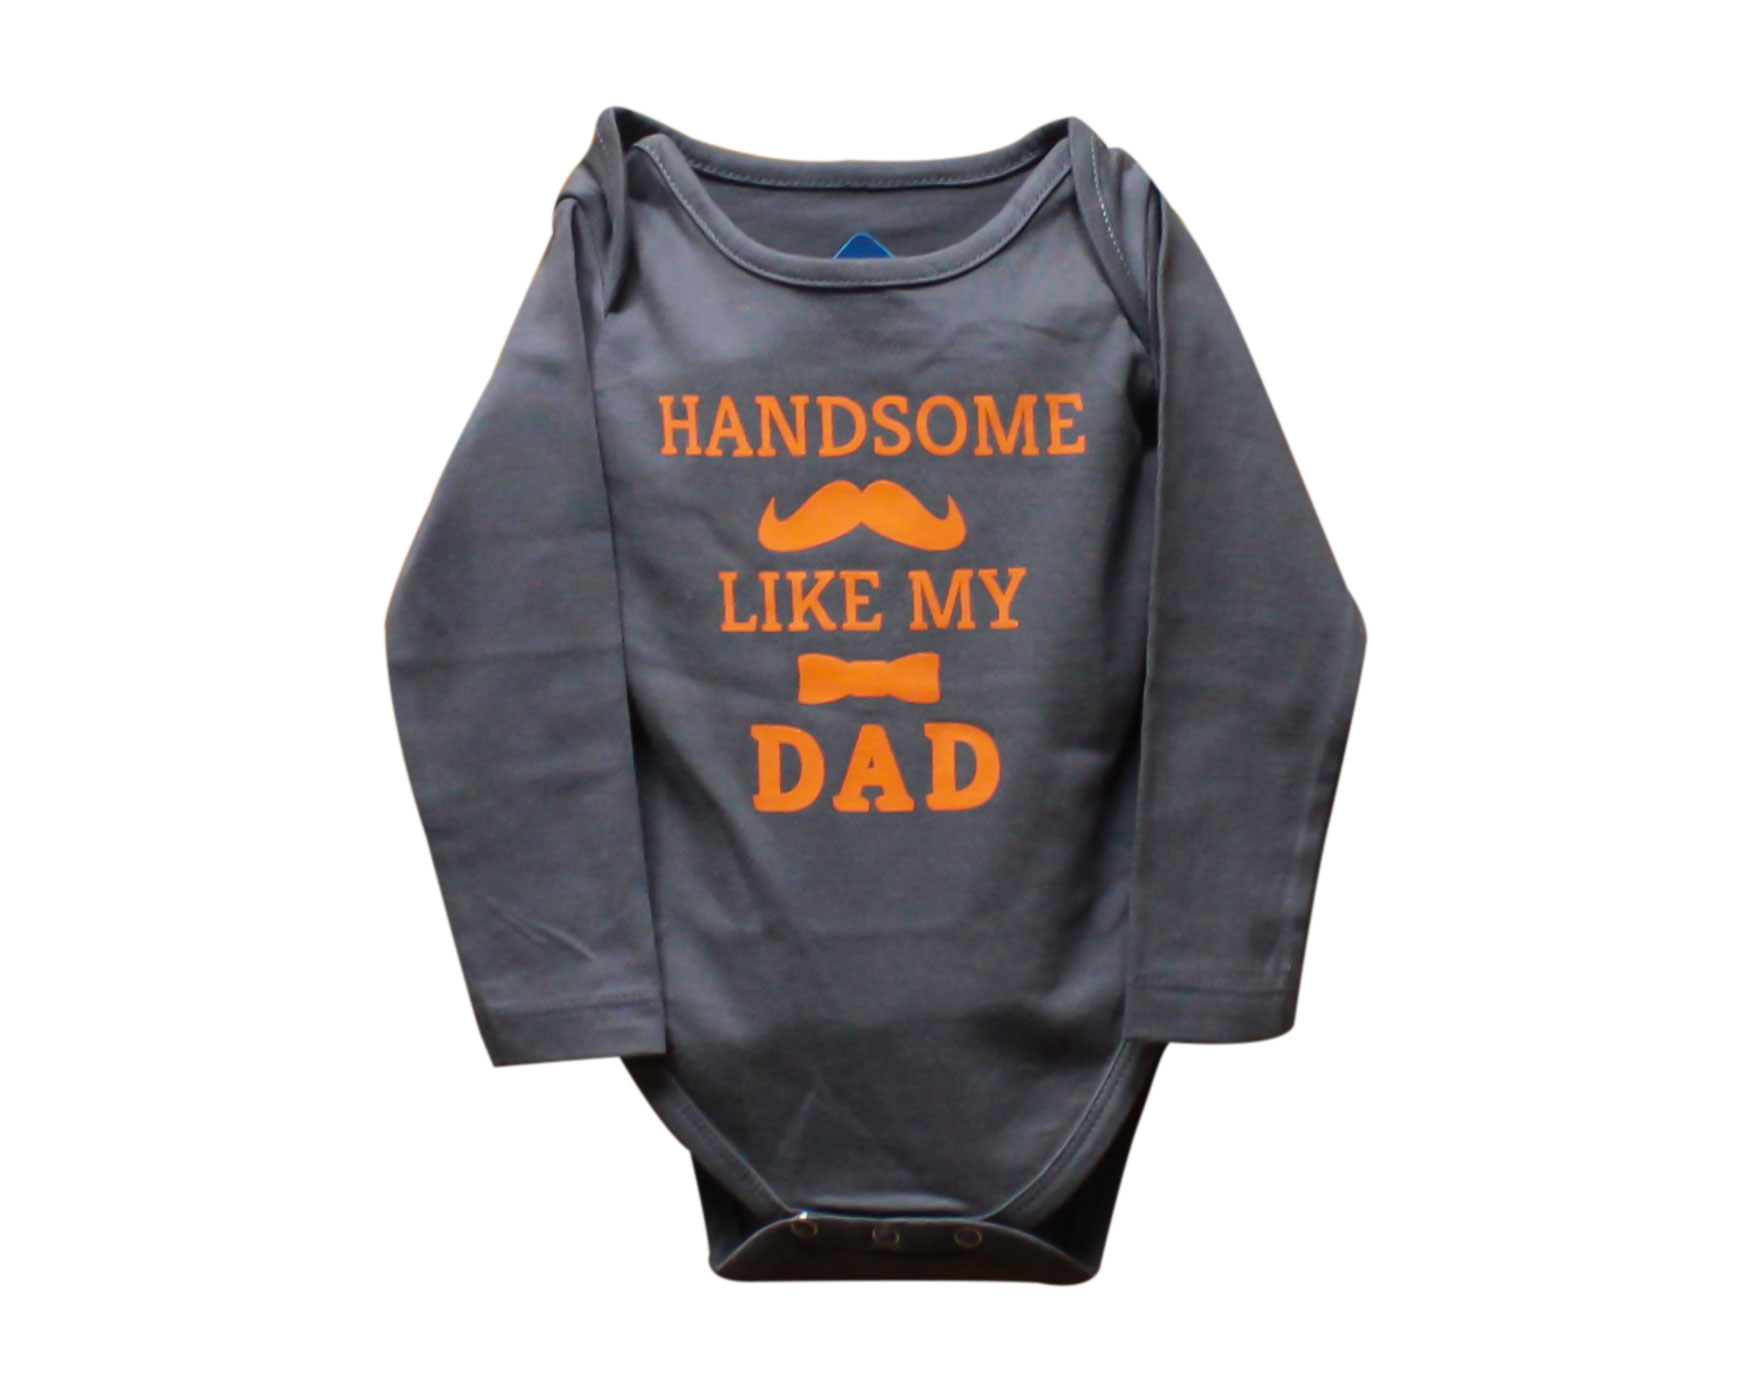 f33d52c4e85 Kids Rompers Online Store - Buy Handsome like my dad Rompers For Kids Online  at best prices on Blue Bus Store.